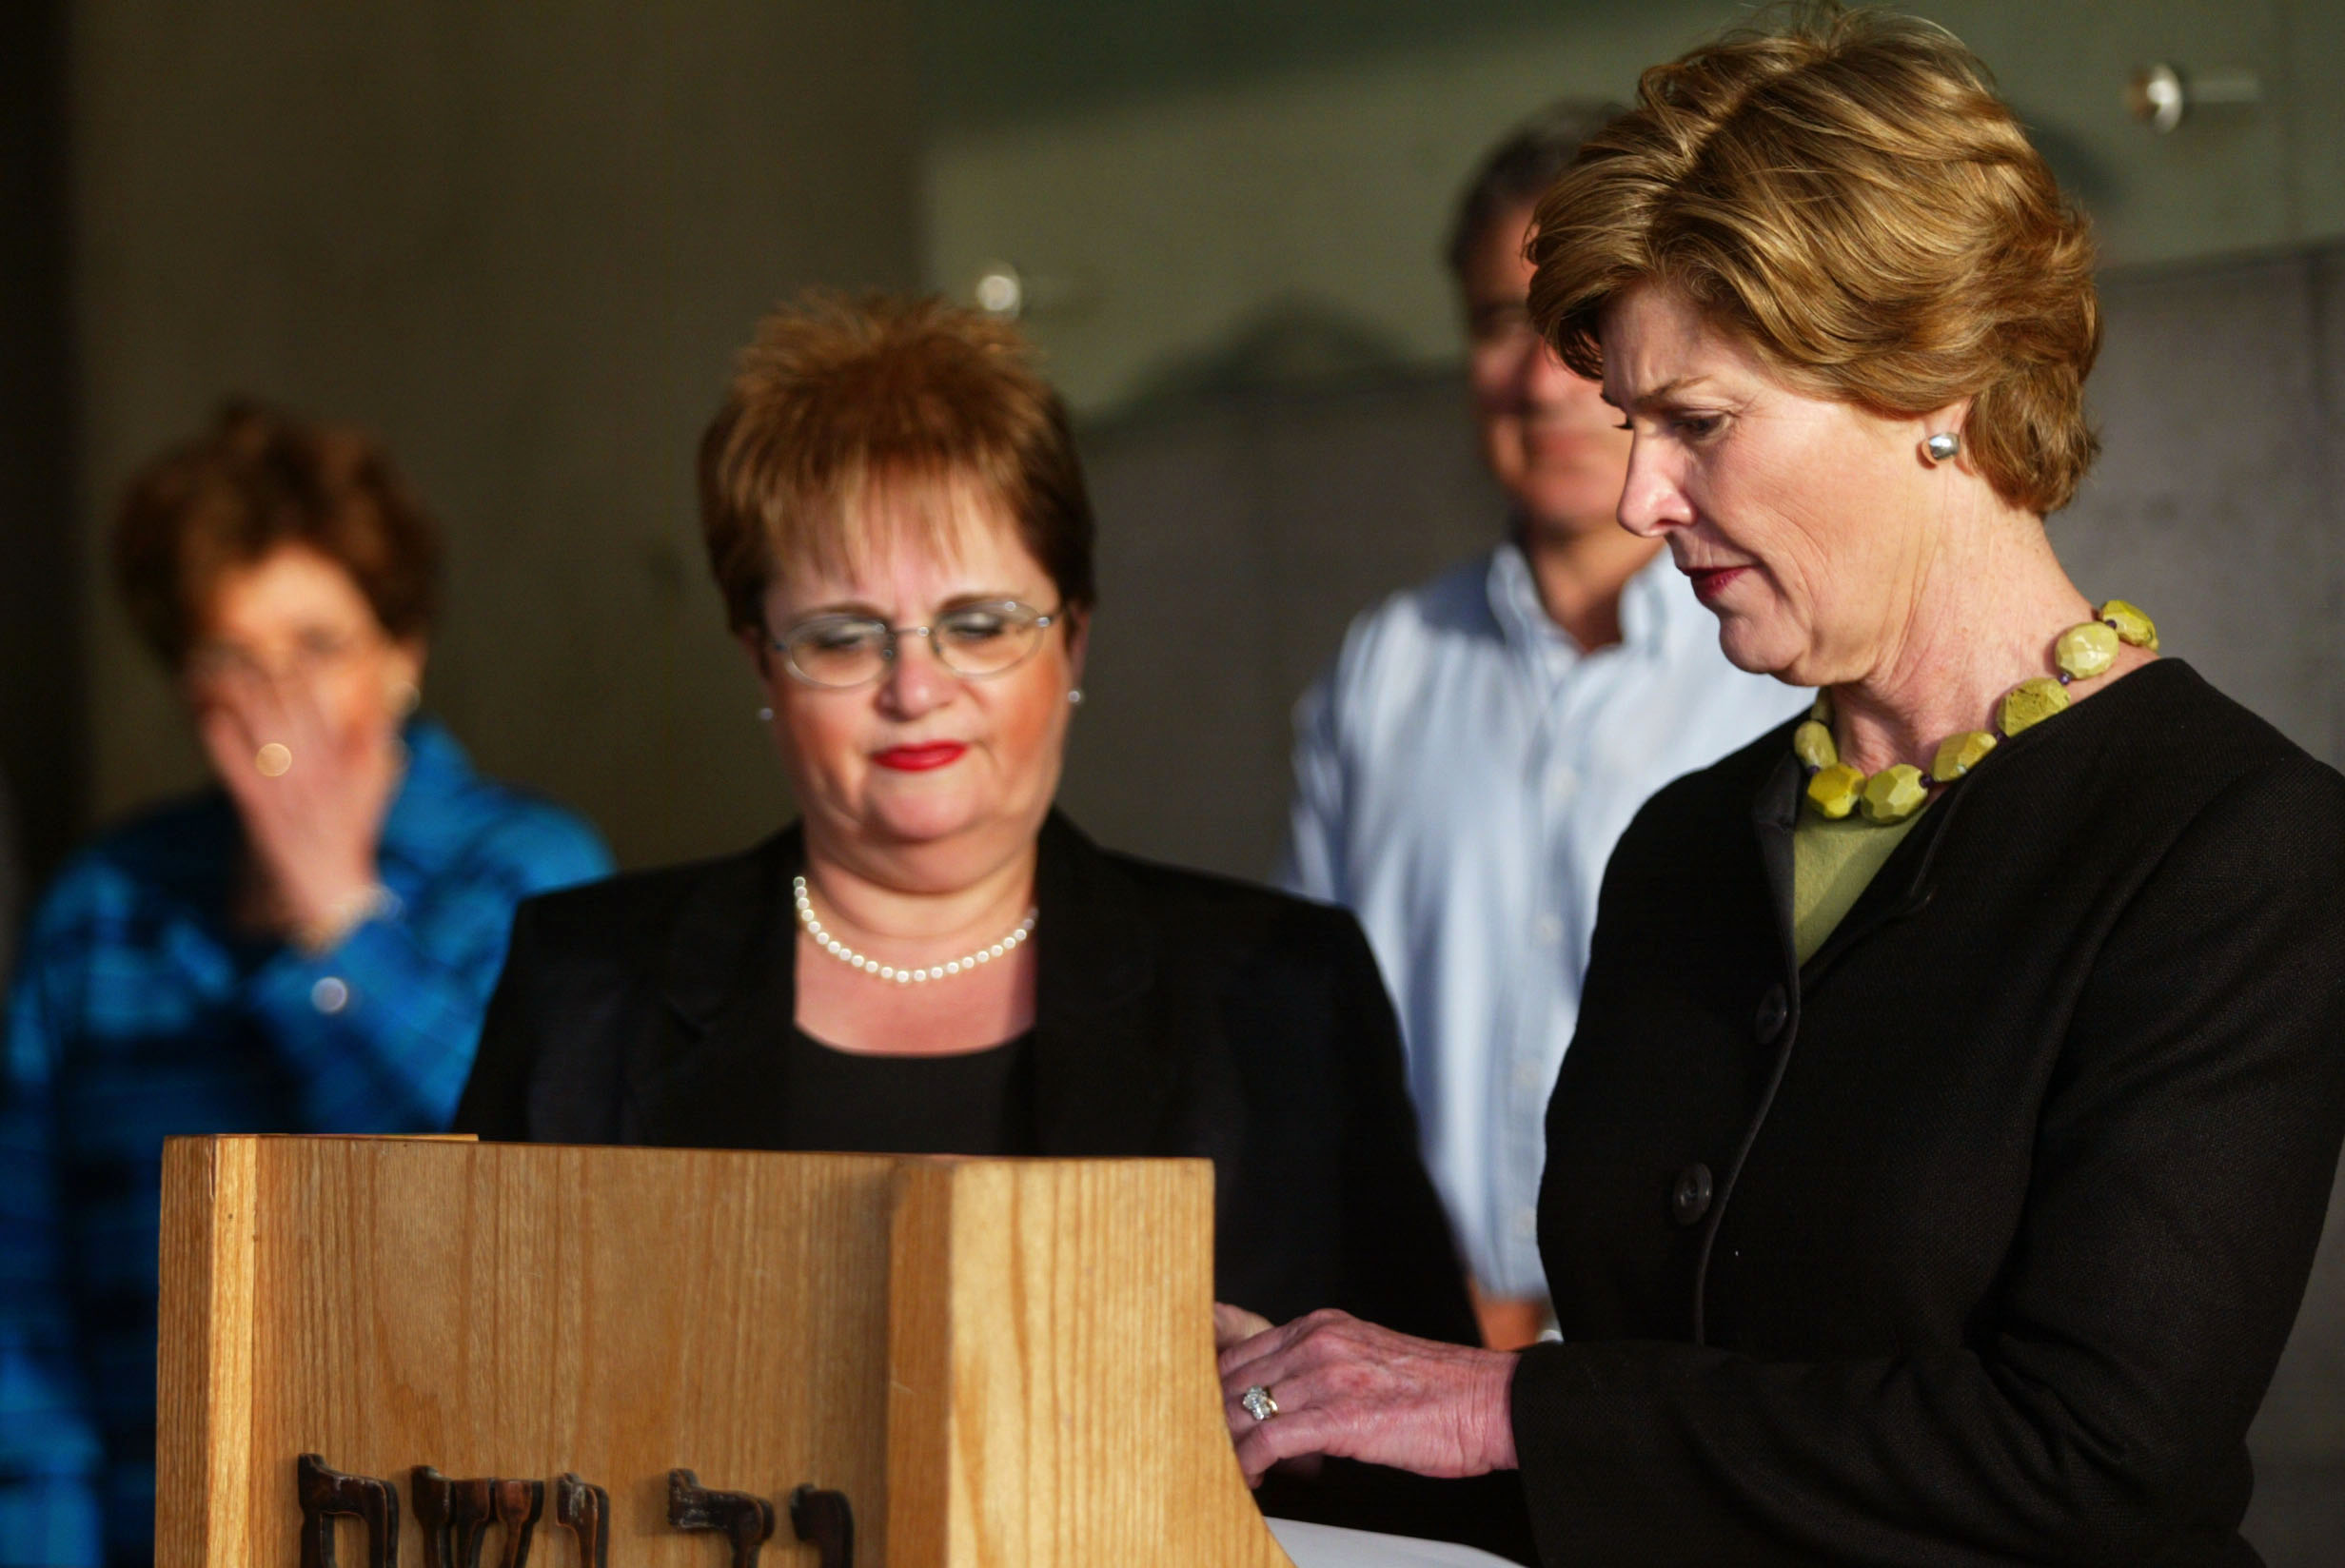 JERUSALEM - MAY 22:  (ISRAEL OUT)  U.S. first lady Laura Bush (R) signs the guestbook at the end of her visit to the Yad Vashem Holocaust Memorial with Gila Katzav (C), wife of Israeli president Moshe Katzav, May 22, 2005 in Jerusalem, Israel. Laura Bush is on a two-day visit to Israel and the Palestinian territories as part of her Middle East tour.  (Photo by Uriel Sinai/Getty Images)